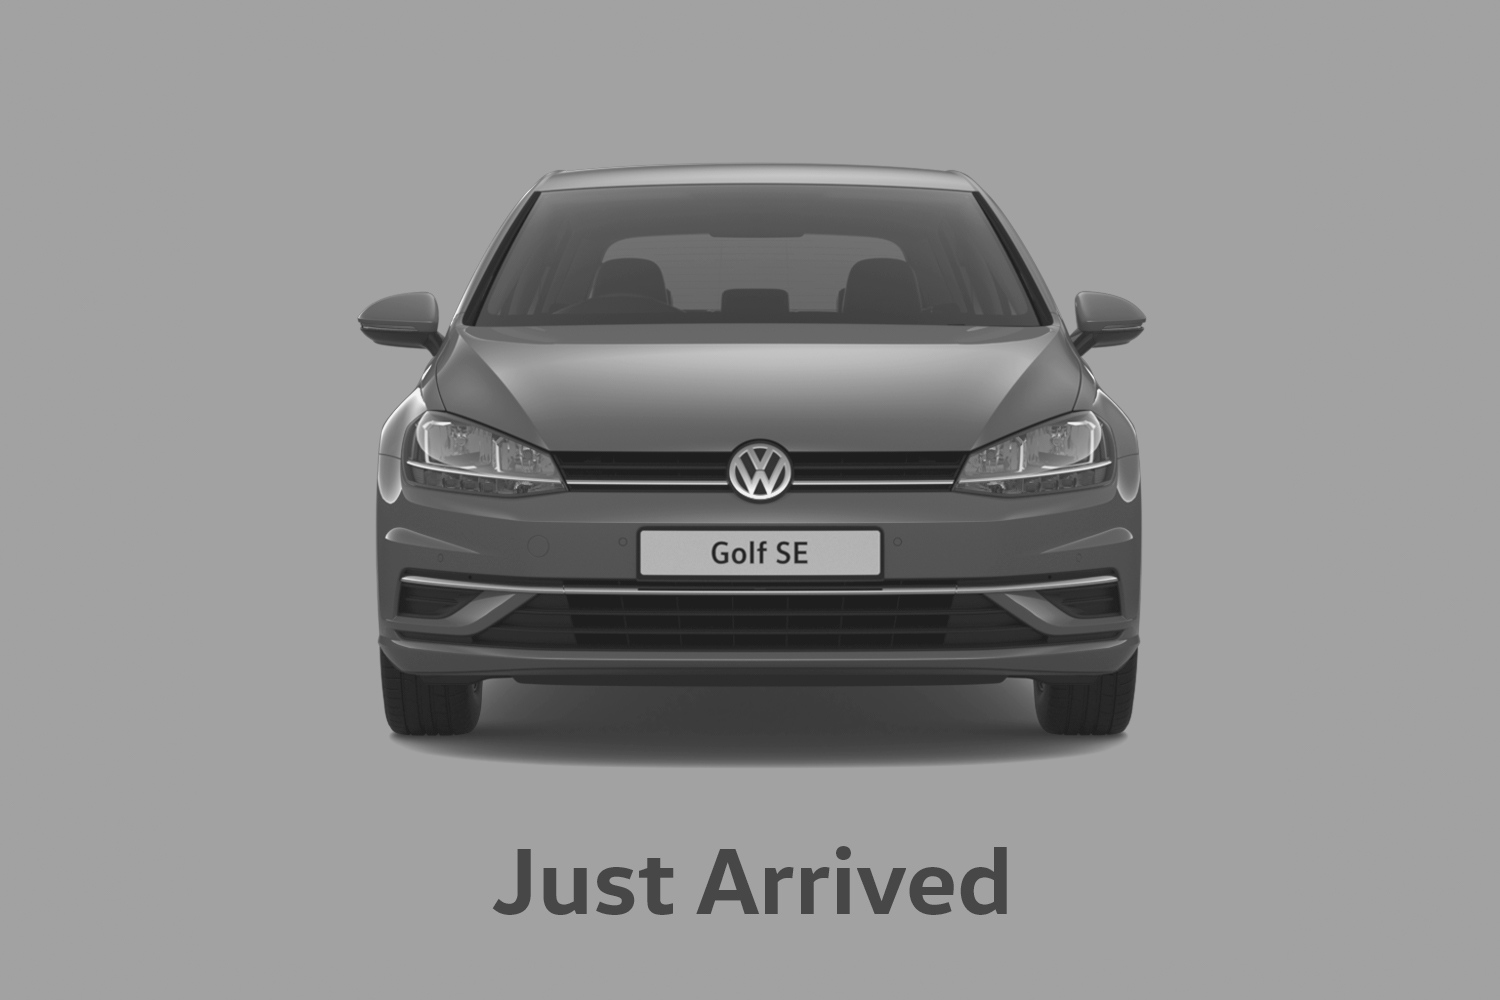 Volkswagen Golf 1.4 TSI SE (122 PS)